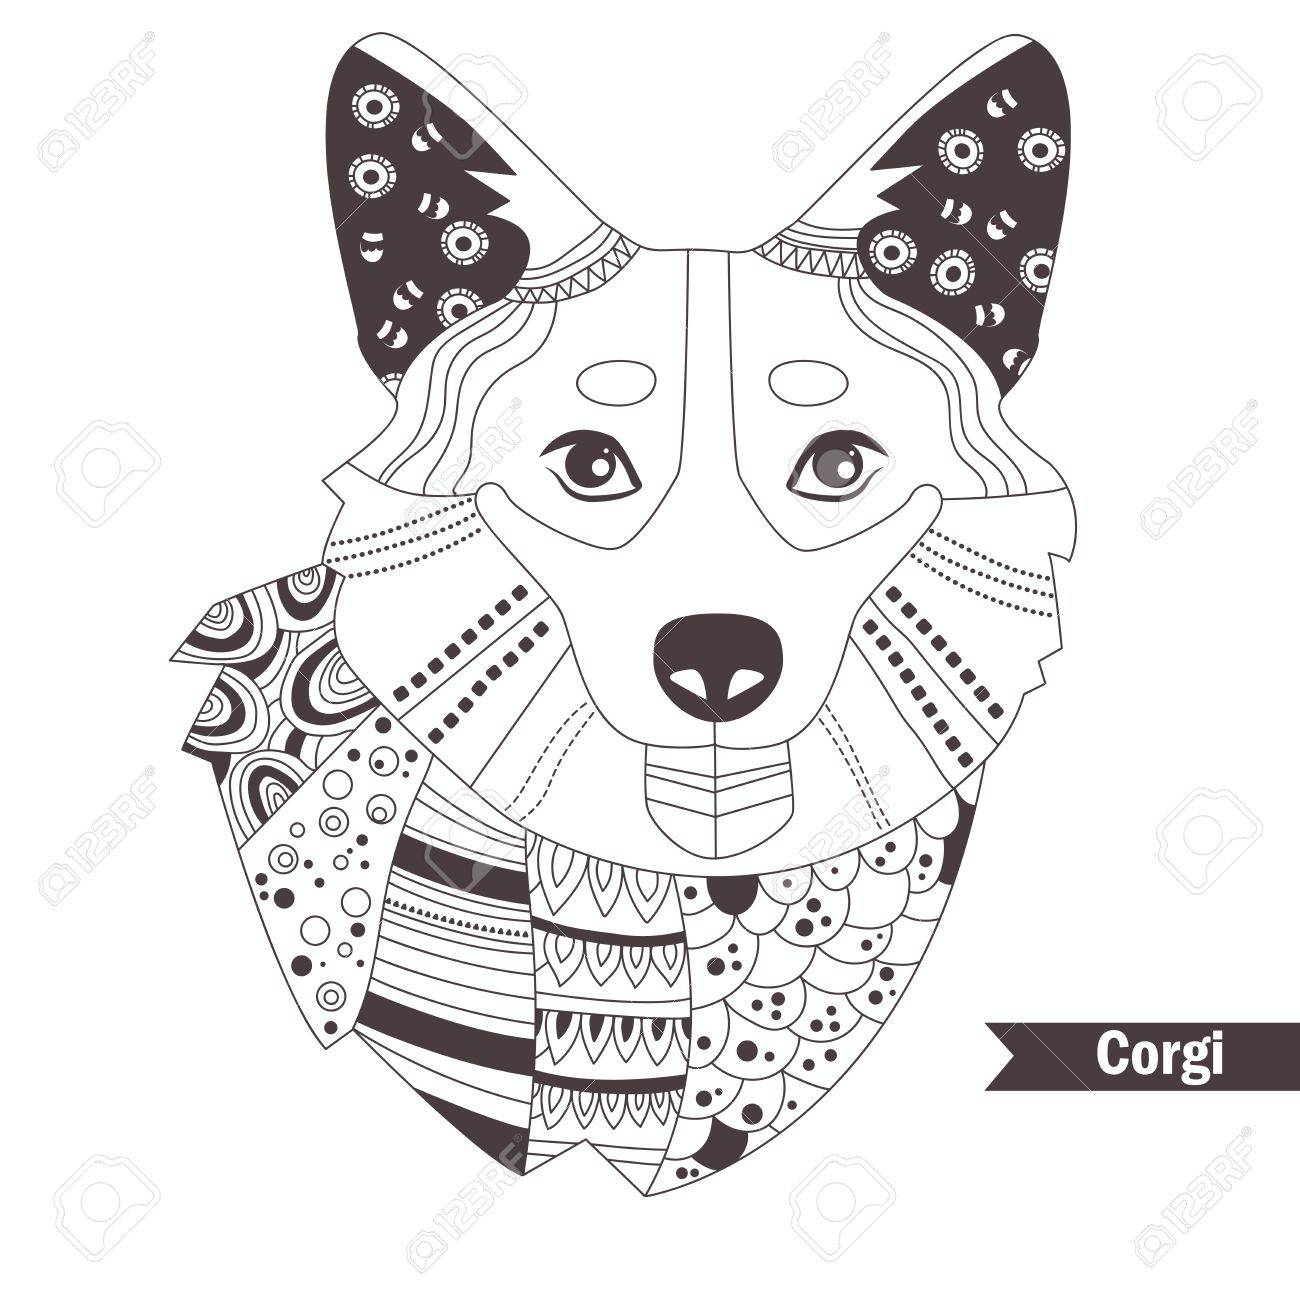 Corgi Coloring Book For Adult Antistress Coloring Pages Hand